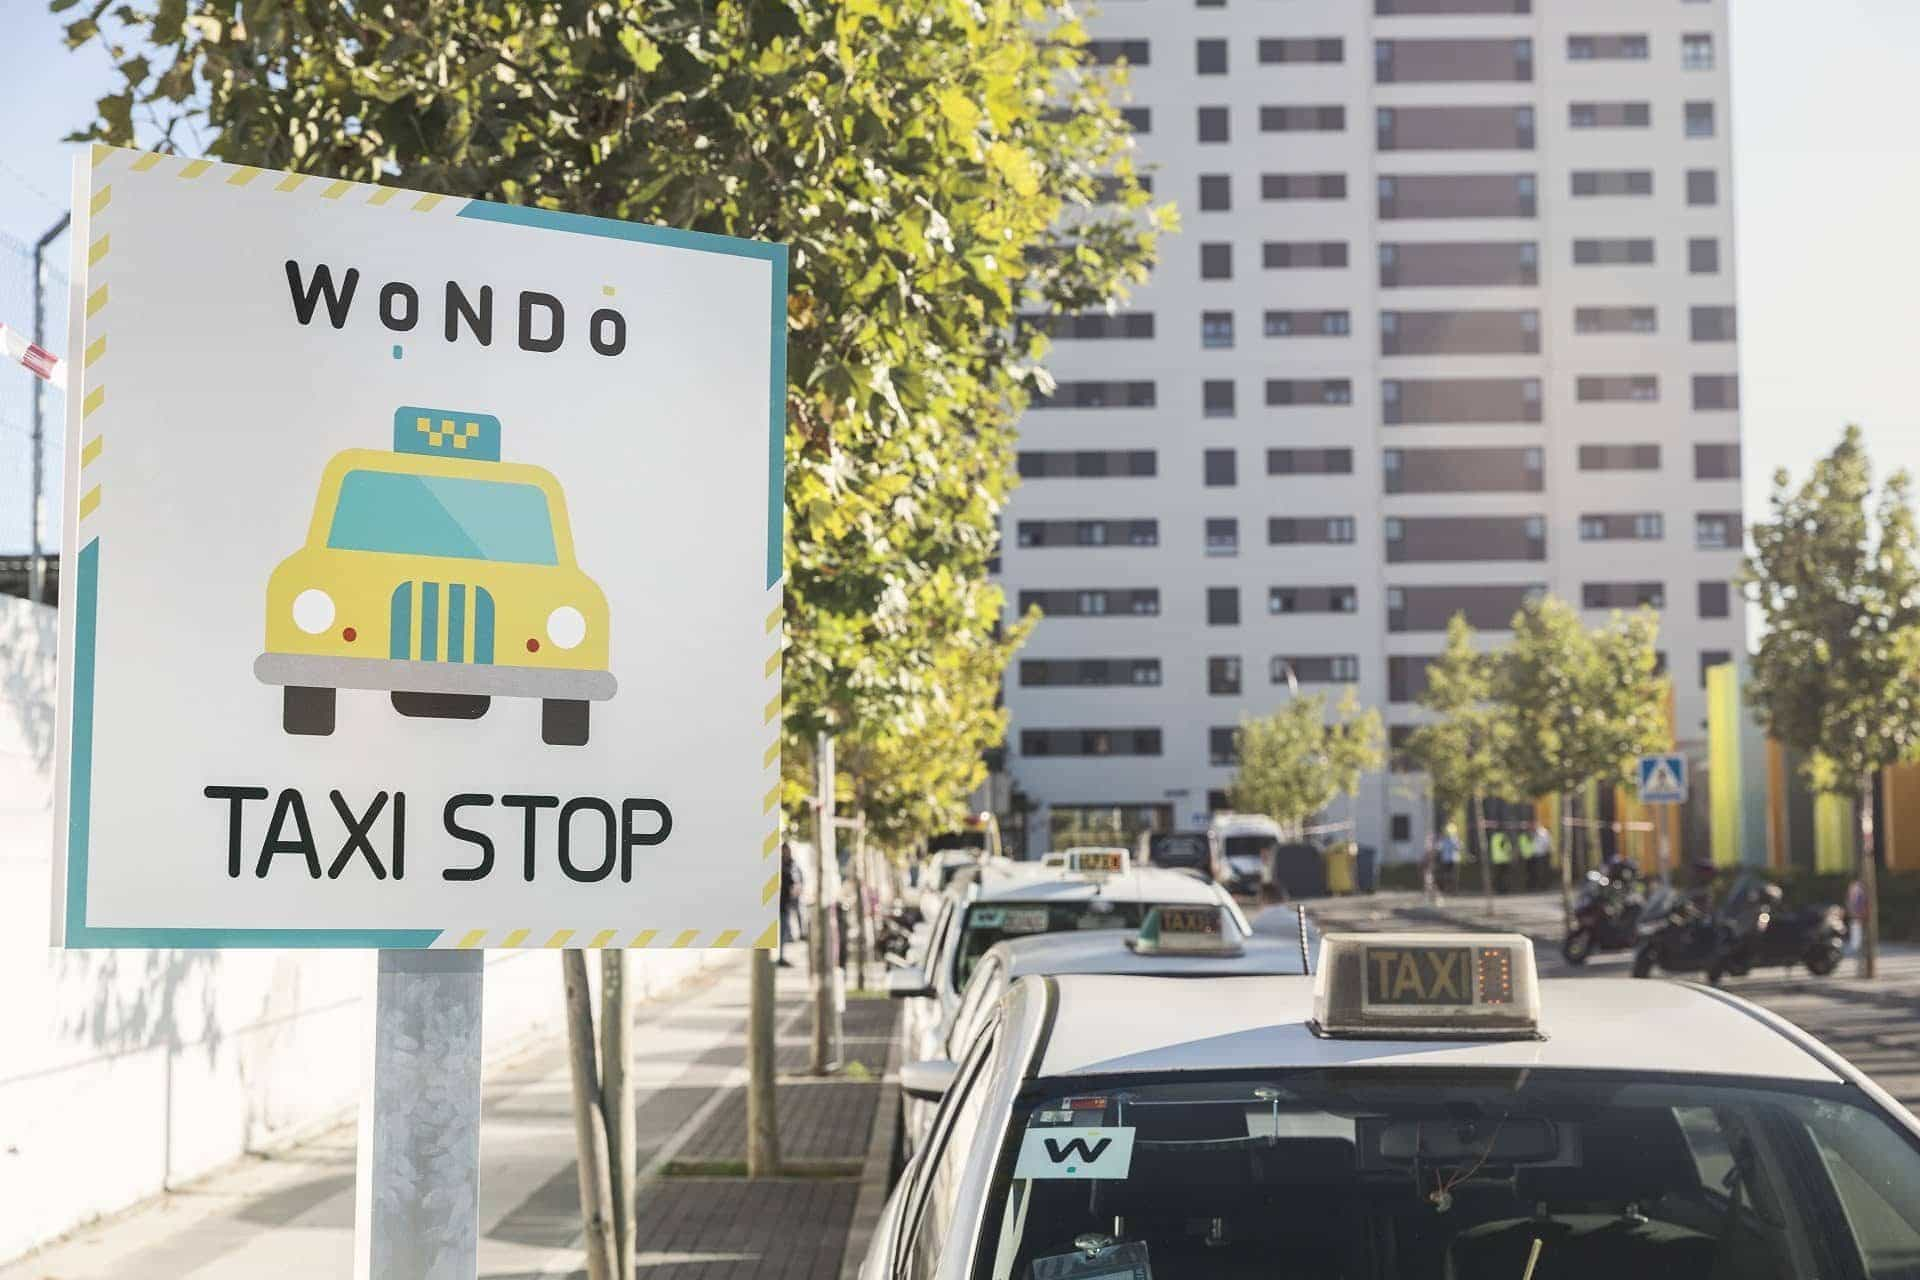 Wondo, Ferrovial's new mobility service